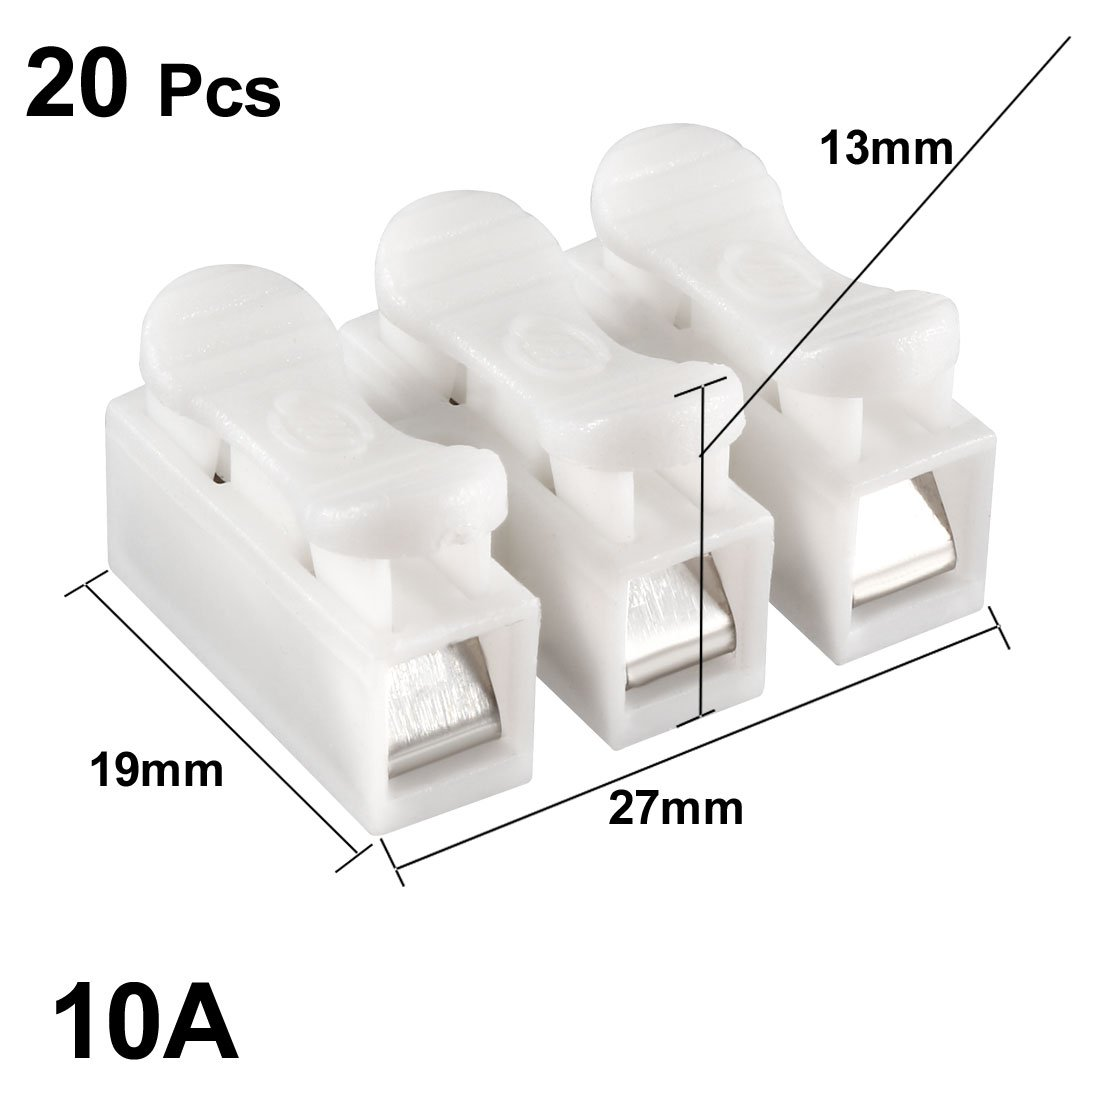 uxcell 10pcs CH3 Spring Wire Connectors Electrical Cable Clamp Terminal Block Connector LED Strip Light Wire Connecting a18042700ux0256